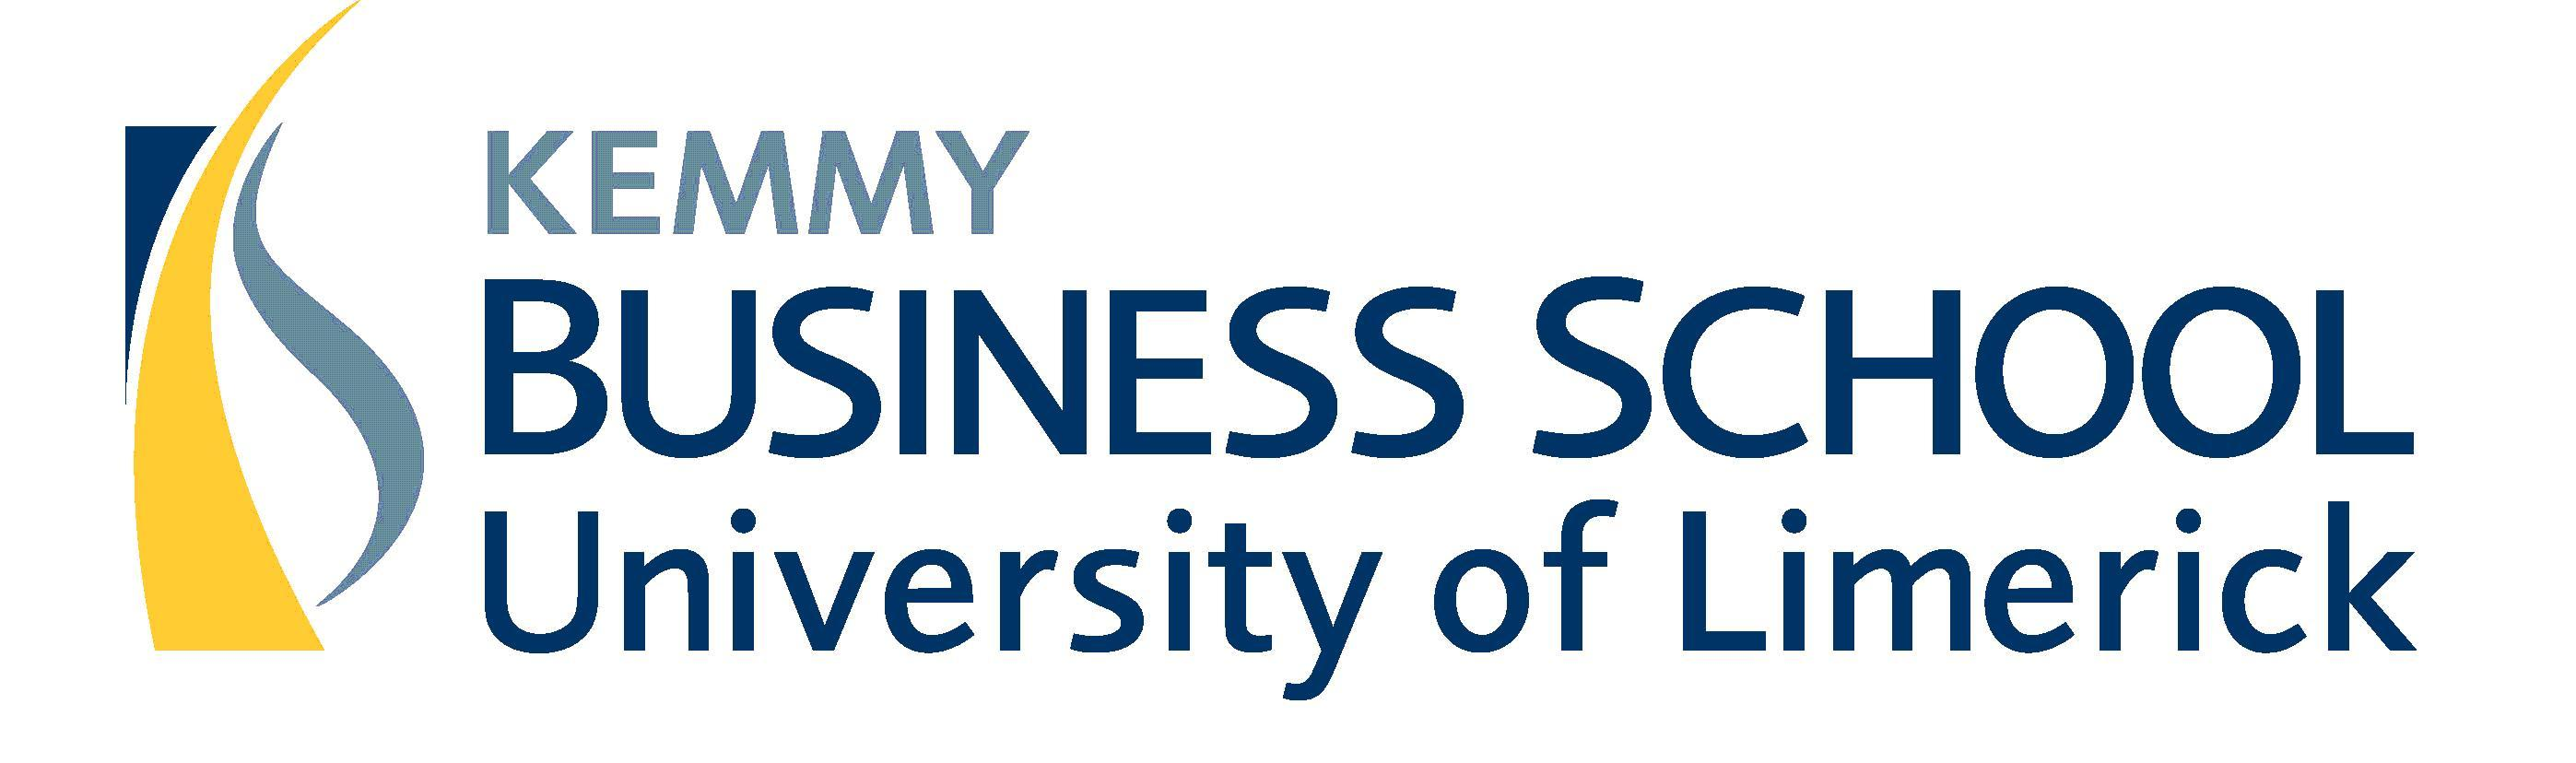 Logo of University of Limerick